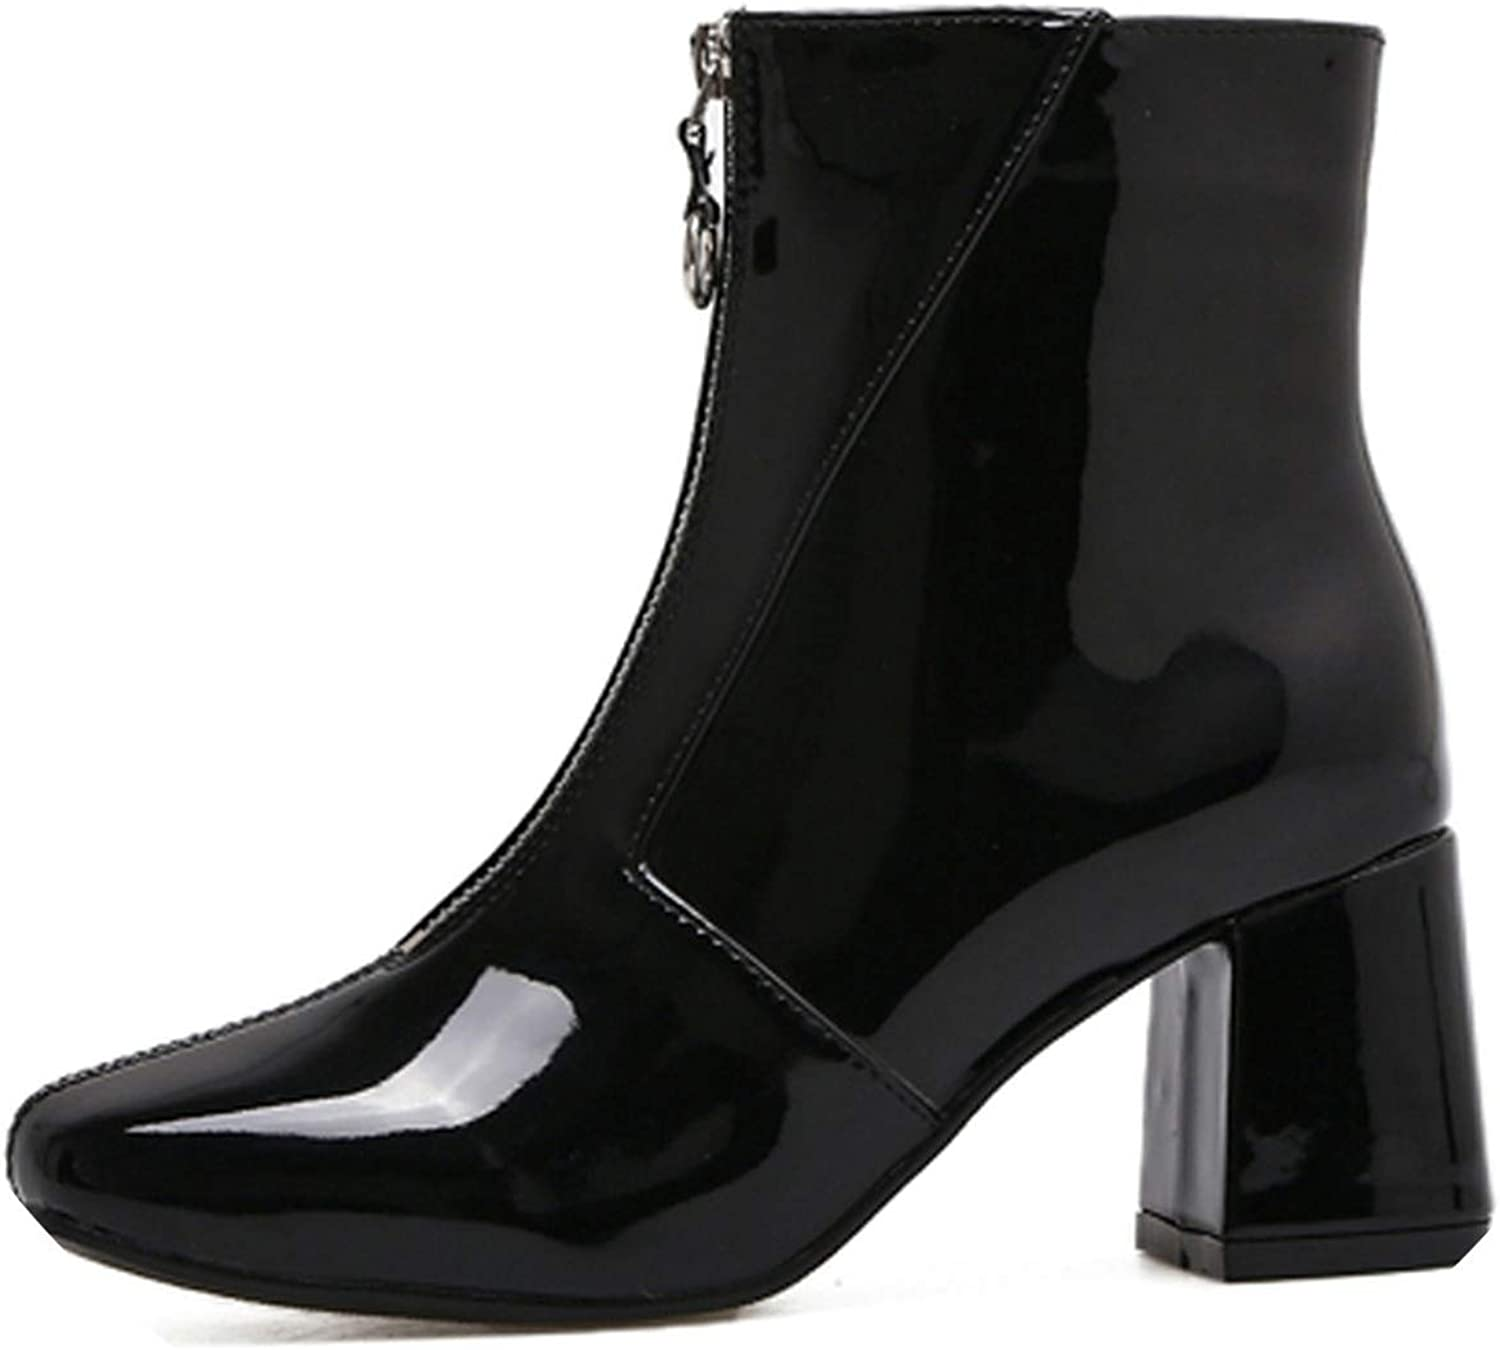 Fashion Chelsea Boots Low Heel Boots Zipper Women Round Toe Square Heel Patent Leather Boots